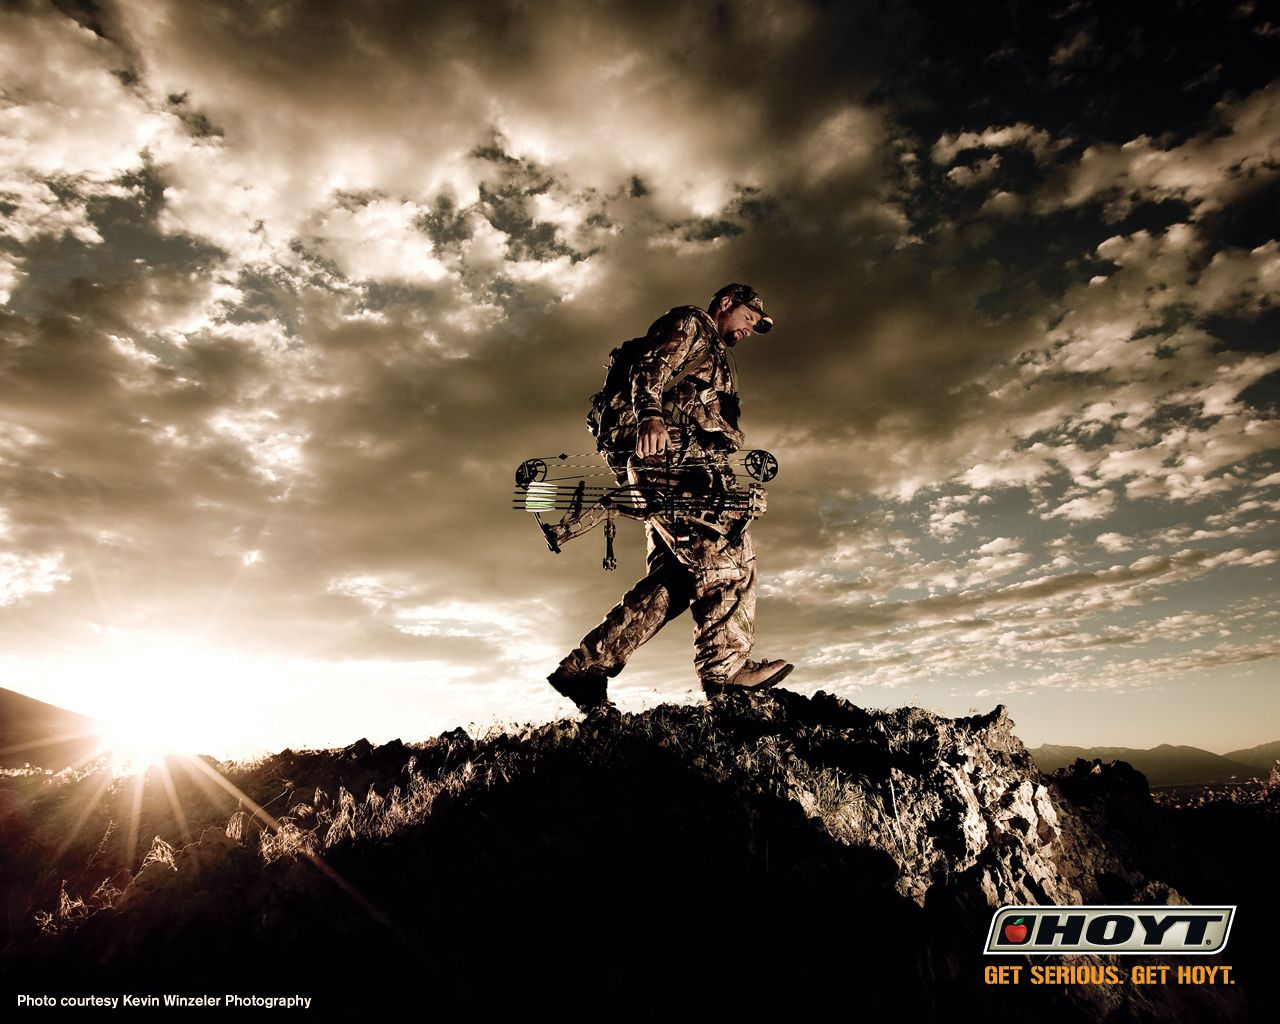 17 best images about hunting on pinterest | stove, hunters and bow, Fishing Gear